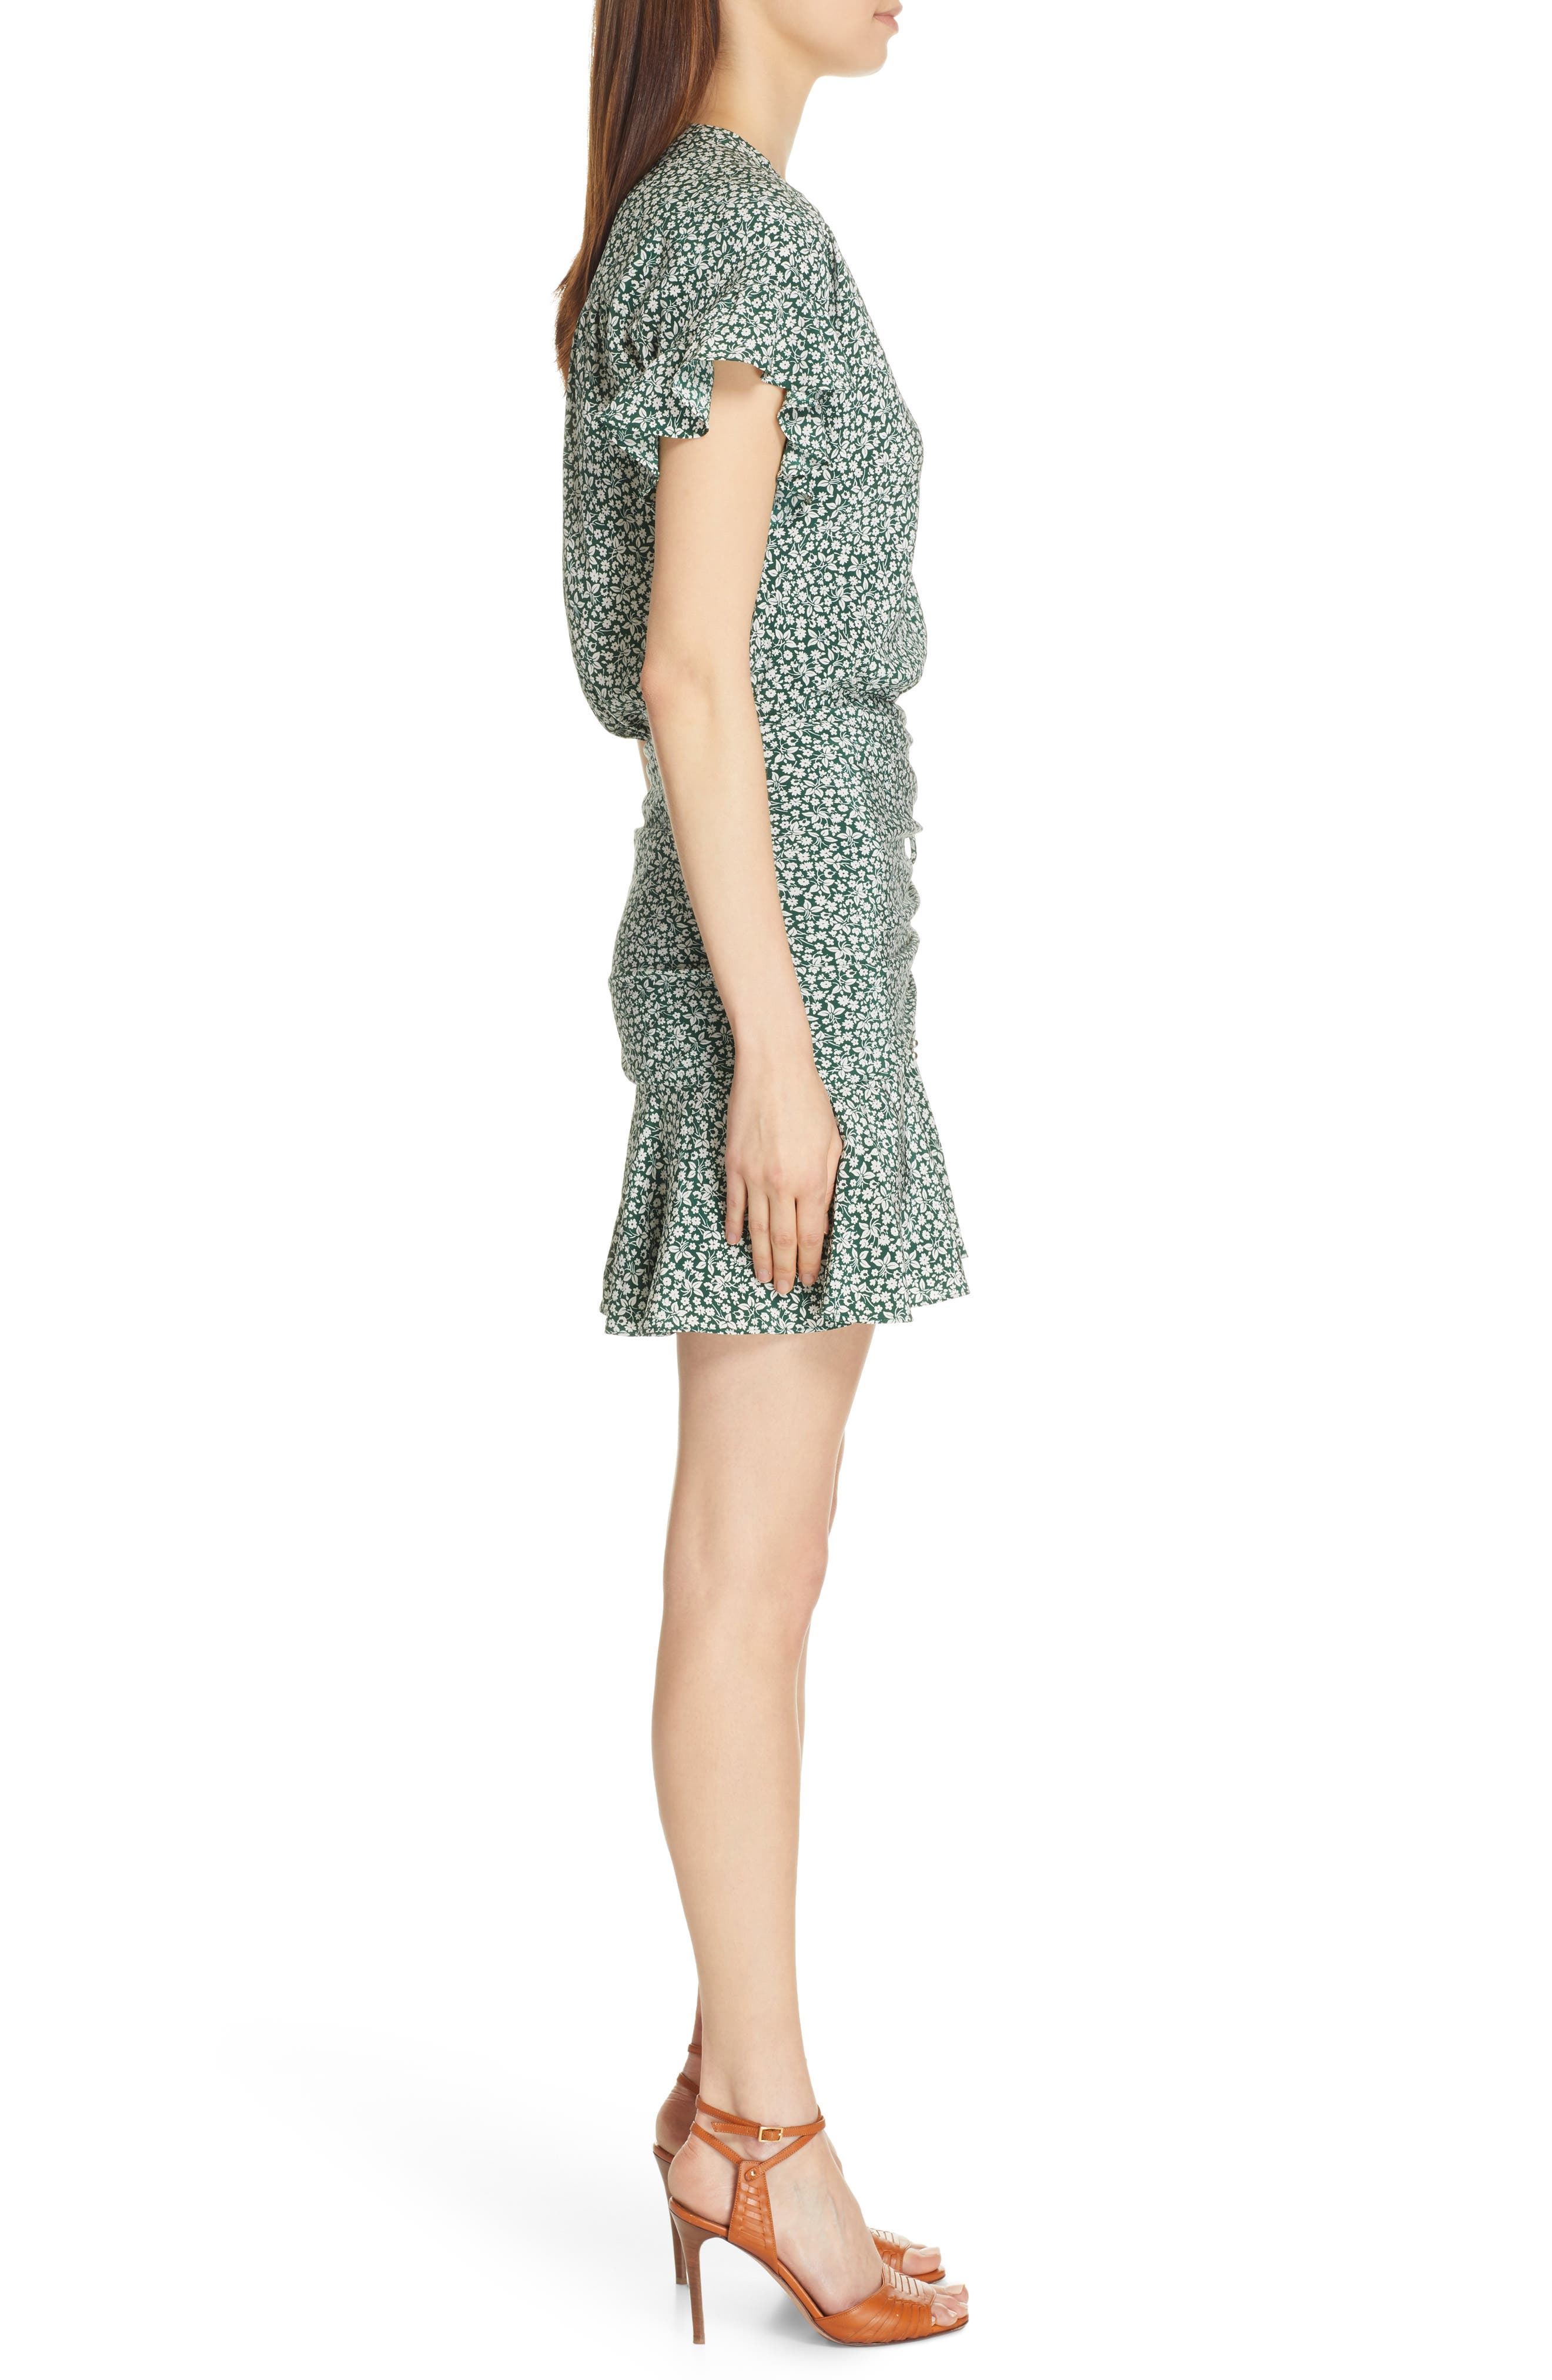 VERONICA BEARD, Marla Tie Ruched Silk Minidress, Alternate thumbnail 4, color, FOREST GREEN